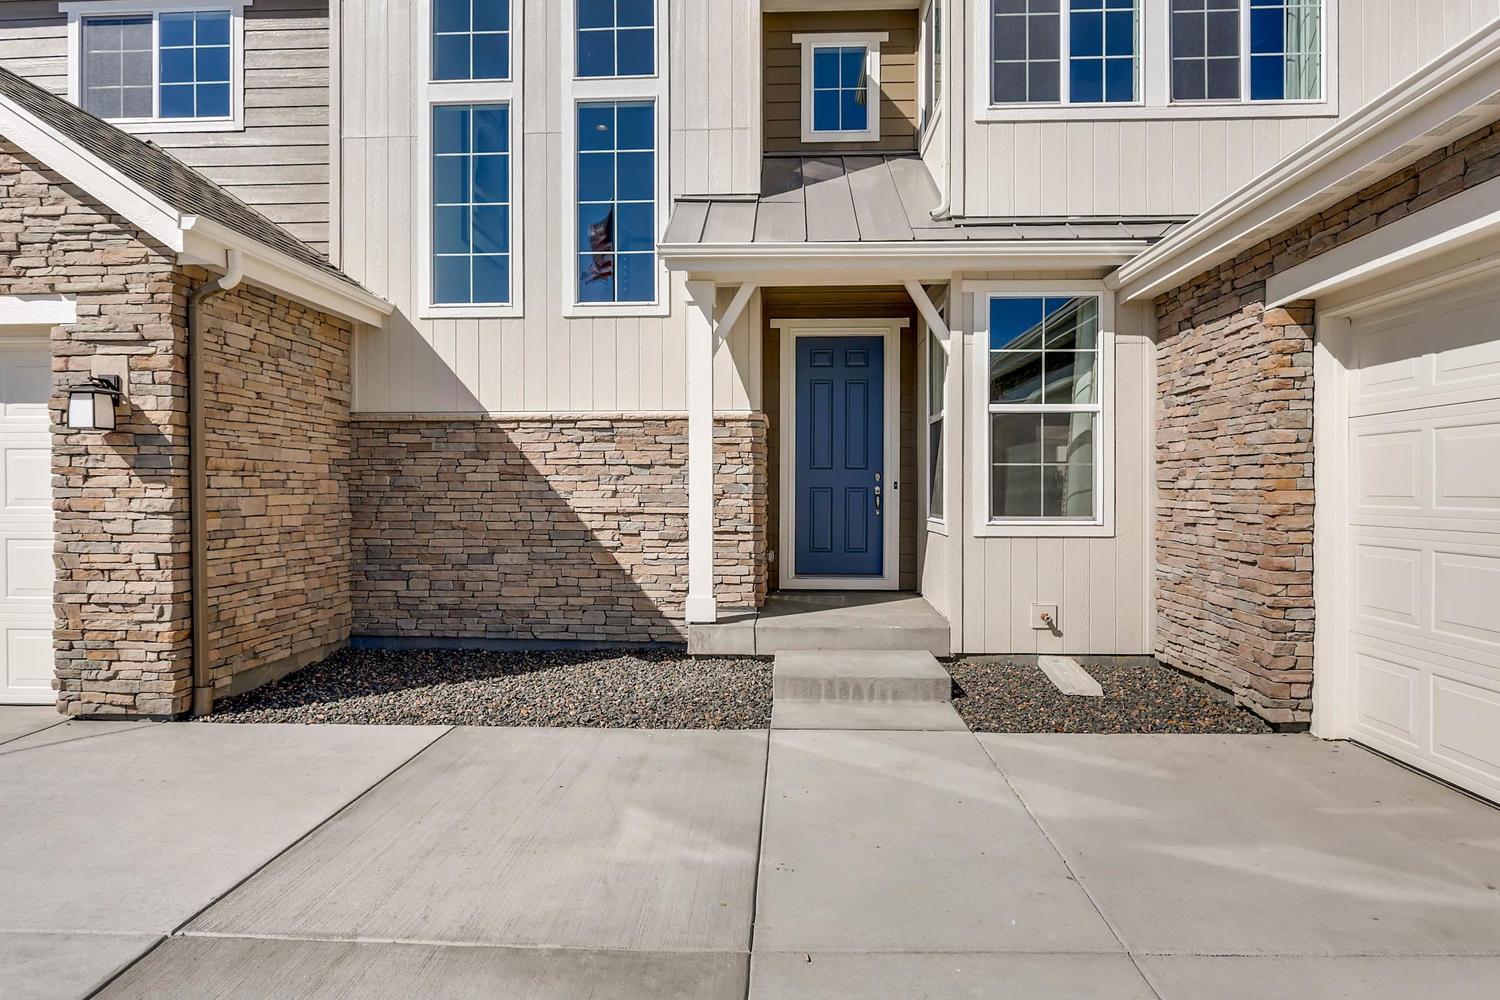 Additional photo for property listing at Residence 6002 8237 S Little River Way Aurora, Colorado 80016 United States